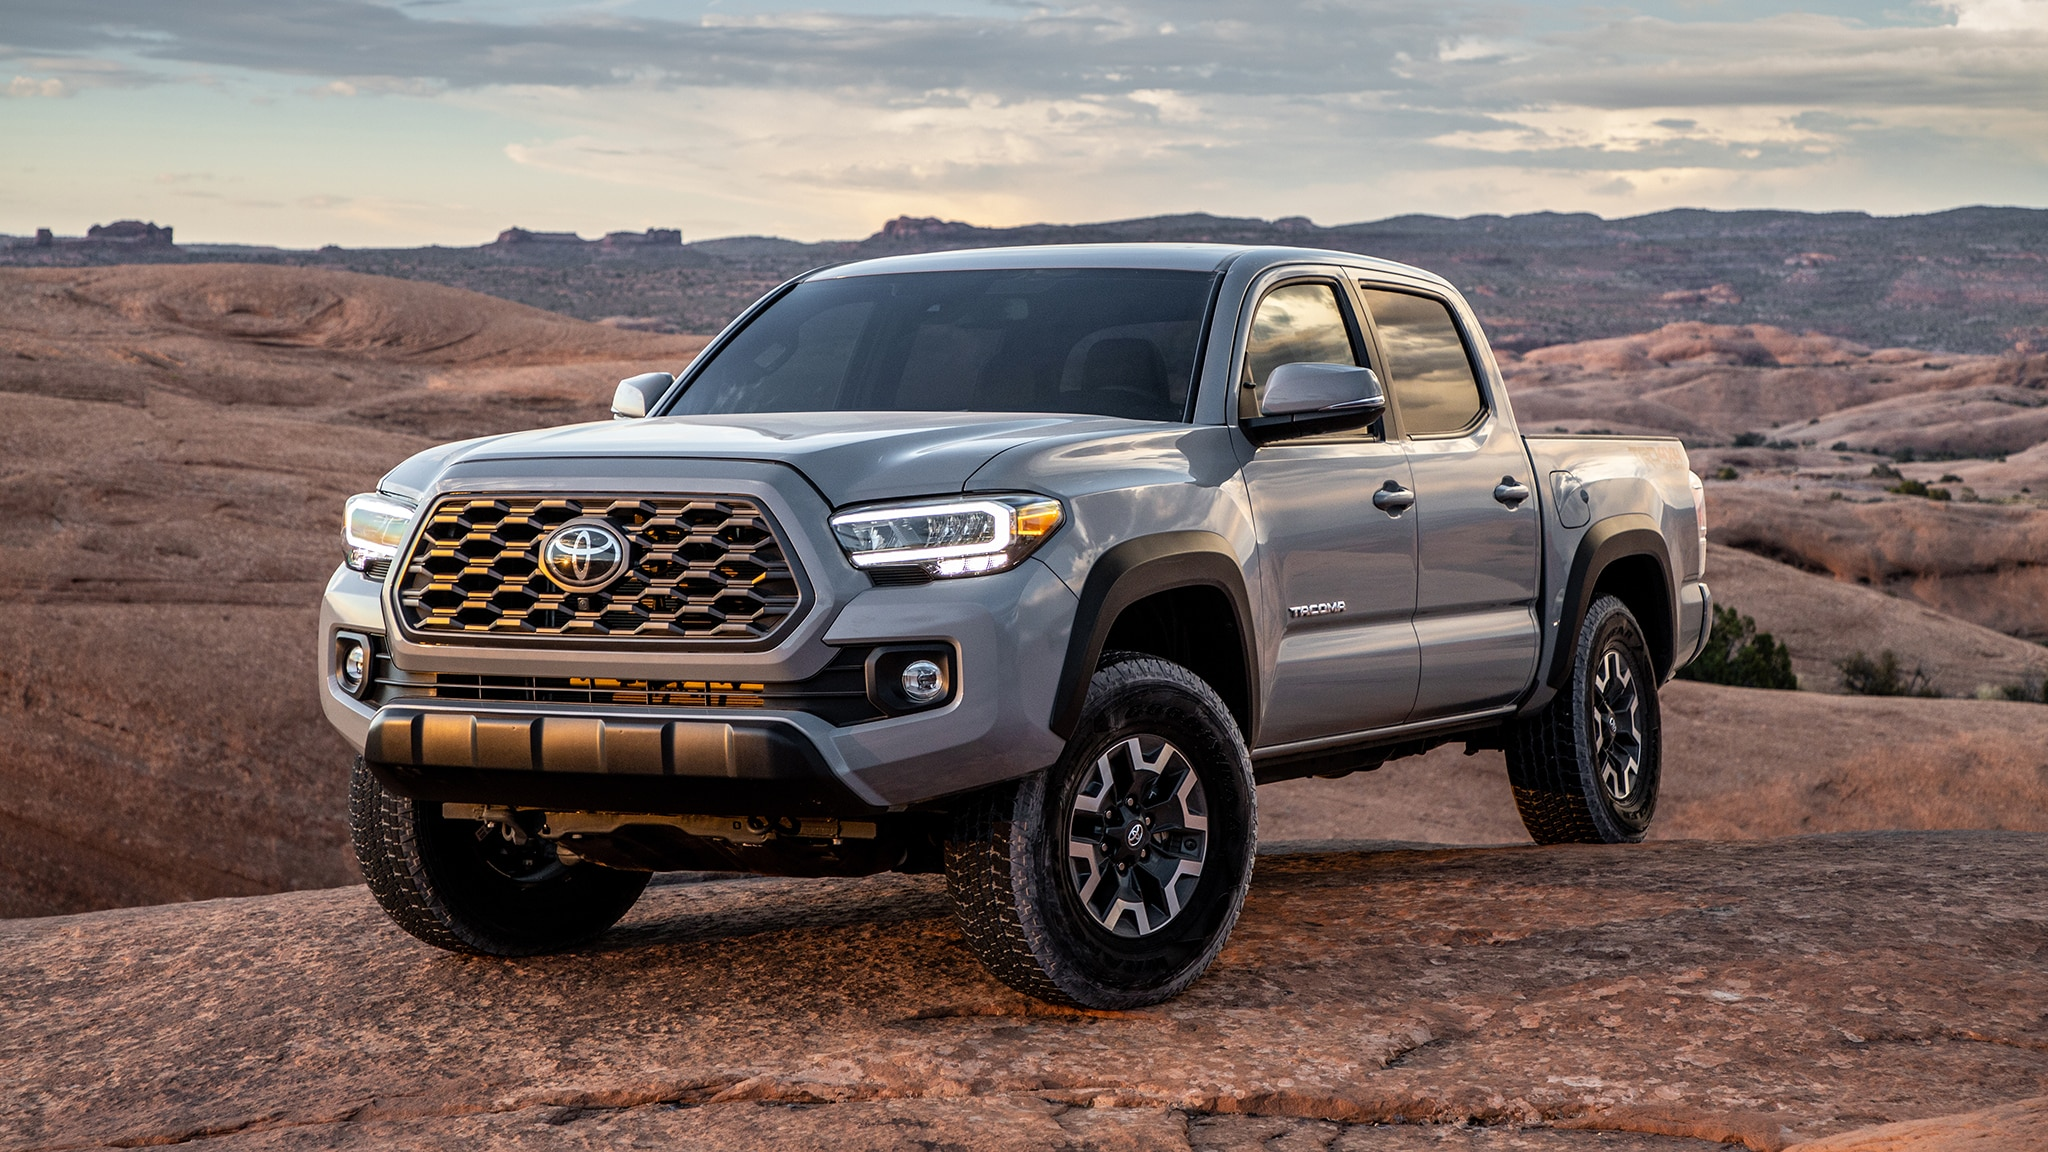 2020 Toyota Tacoma Trd Pro Goes Where Few Trucks Can